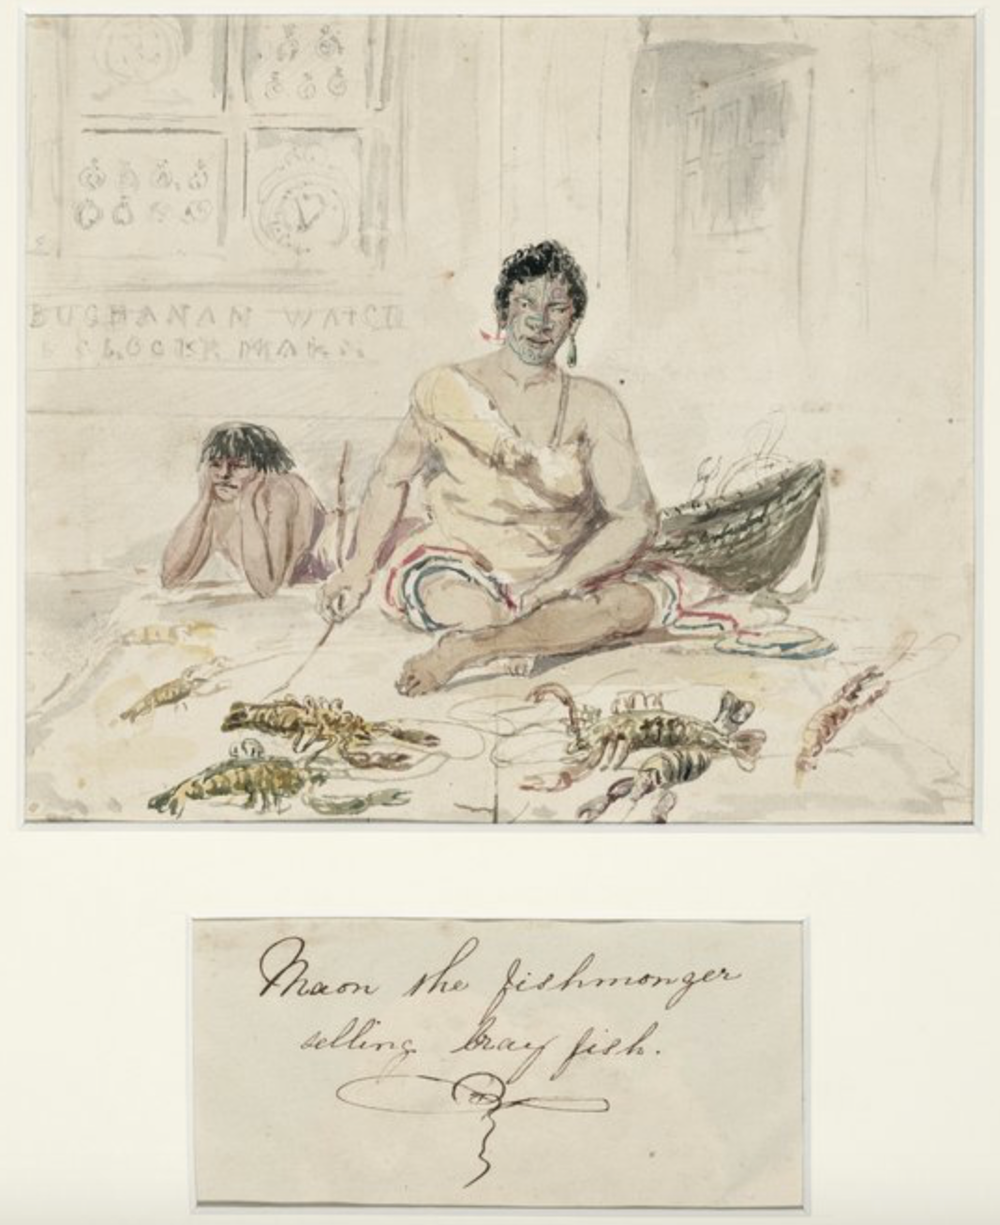 Artist_unknown__Maori_the_fishmonger_______Items___National_Library_of_New_Zealand.png